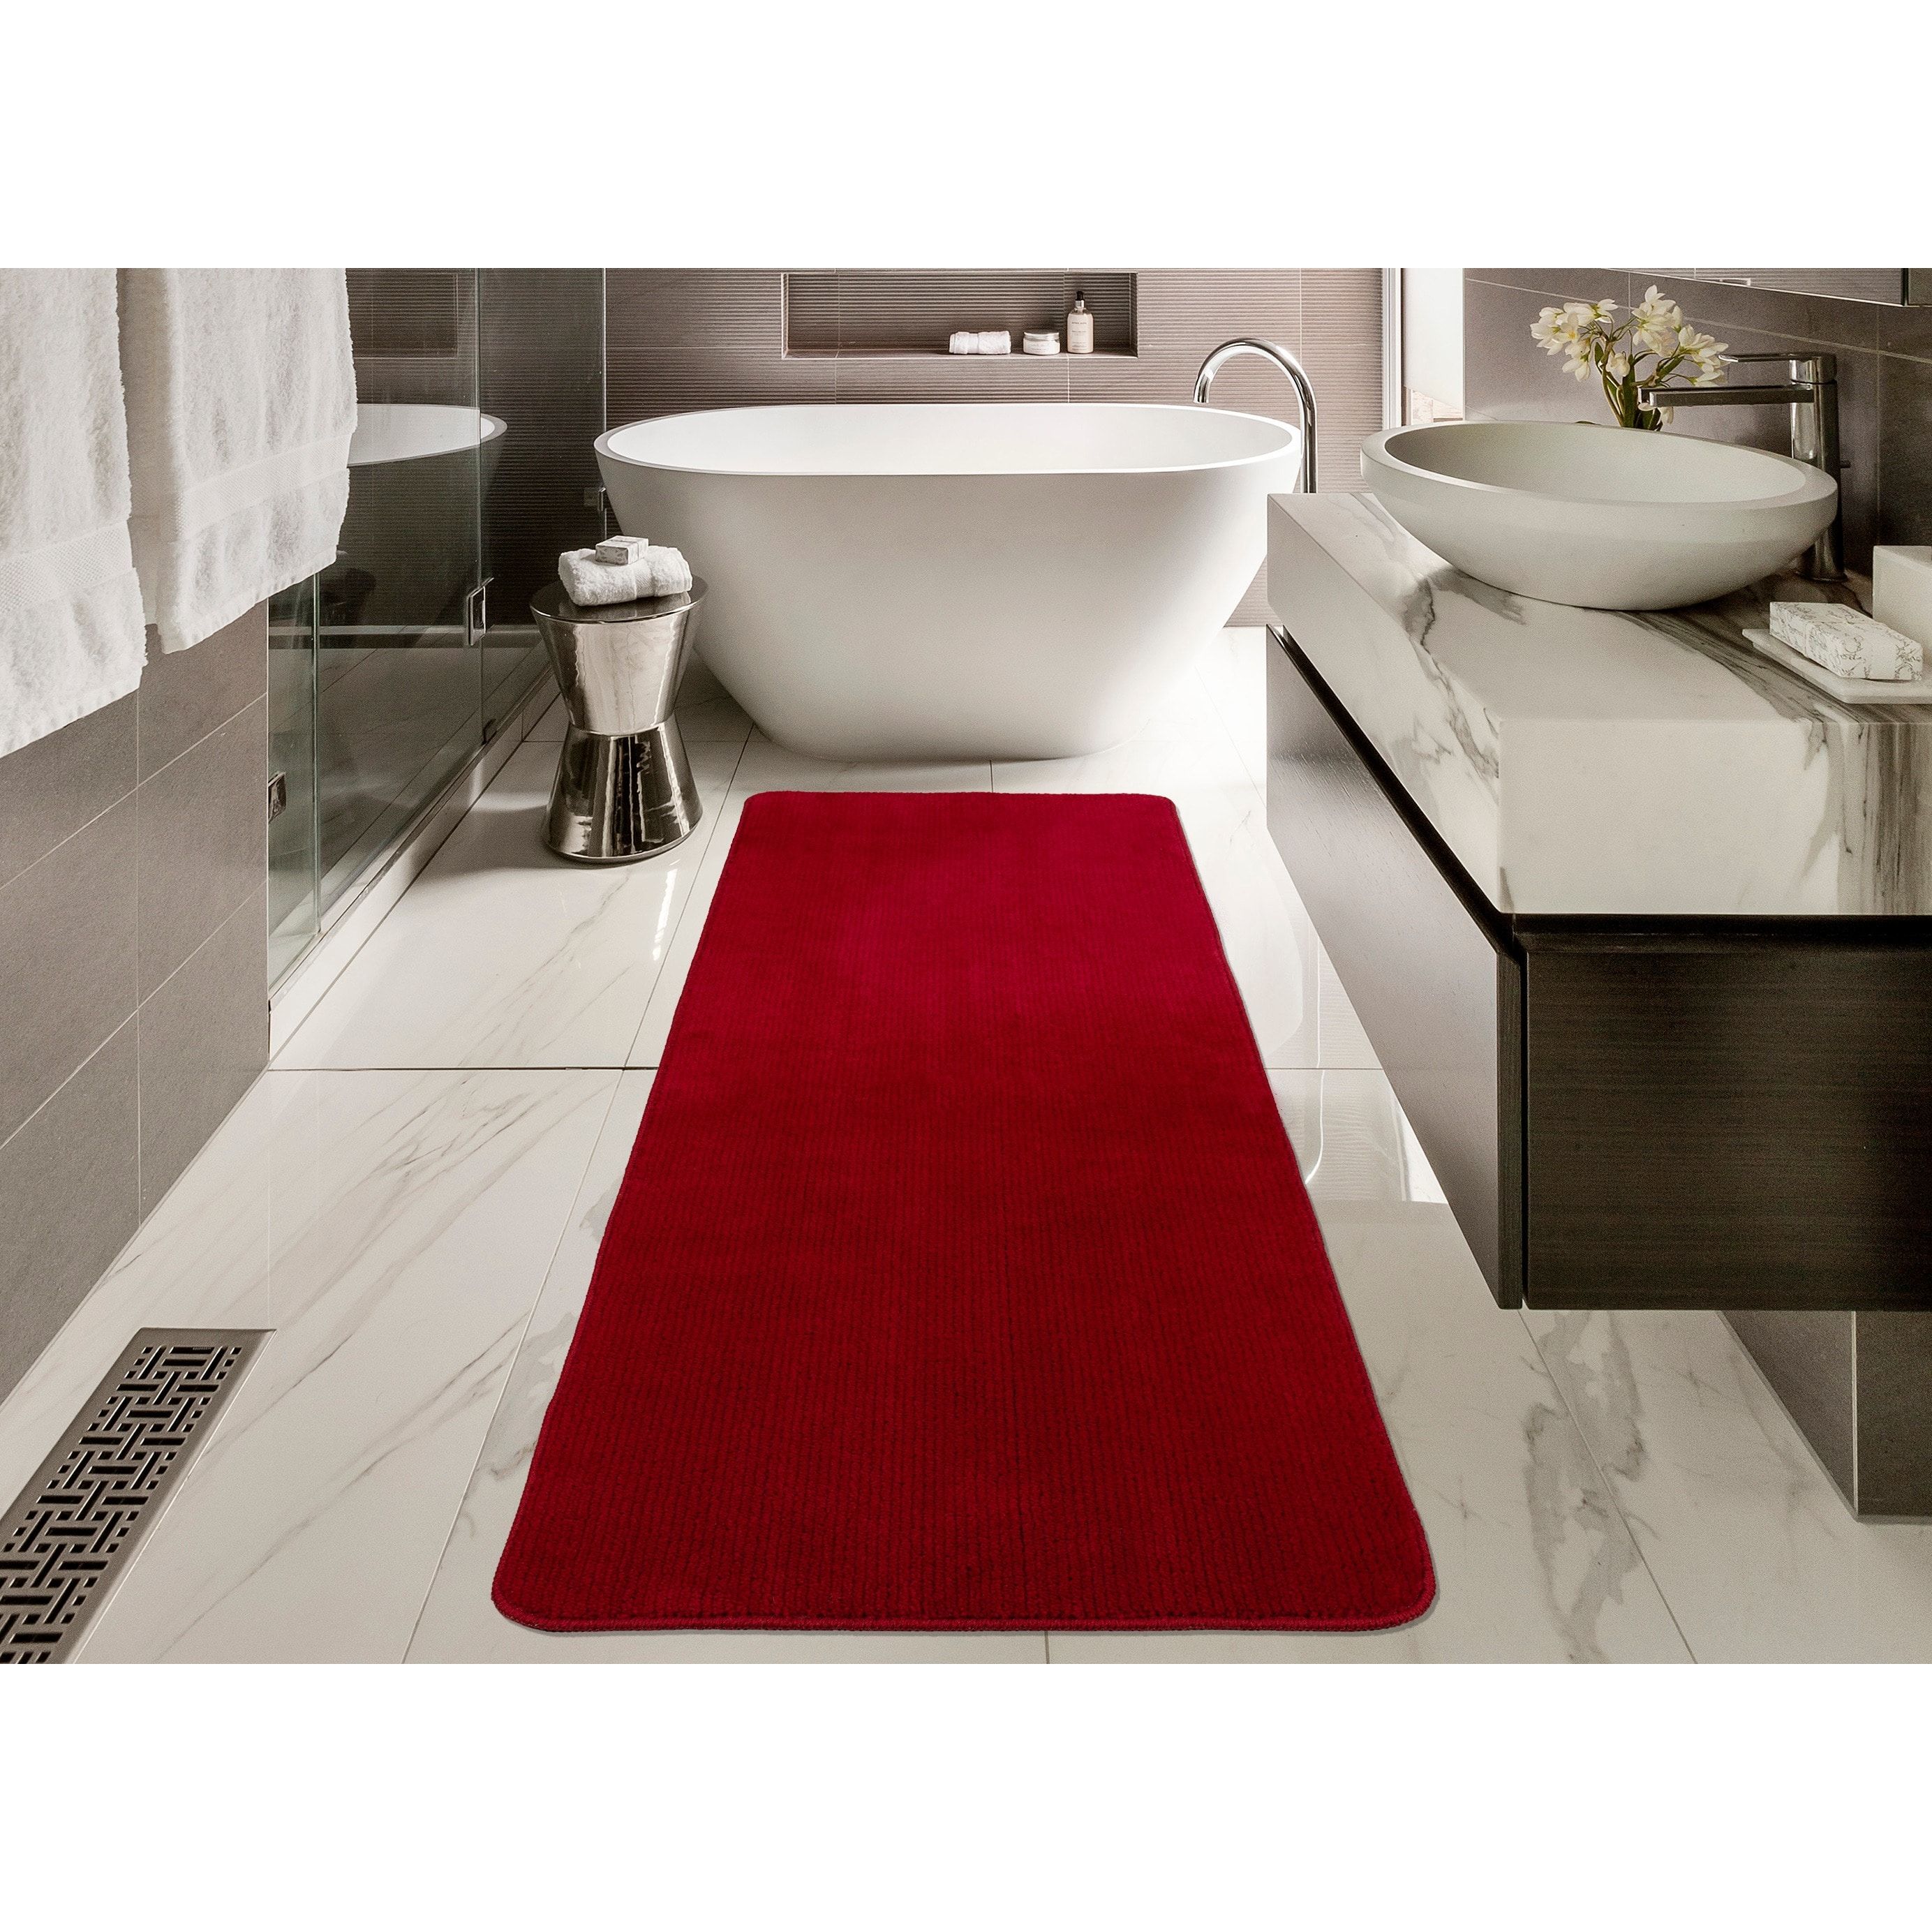 Softy Solid Red Non Slip Rubber Backing